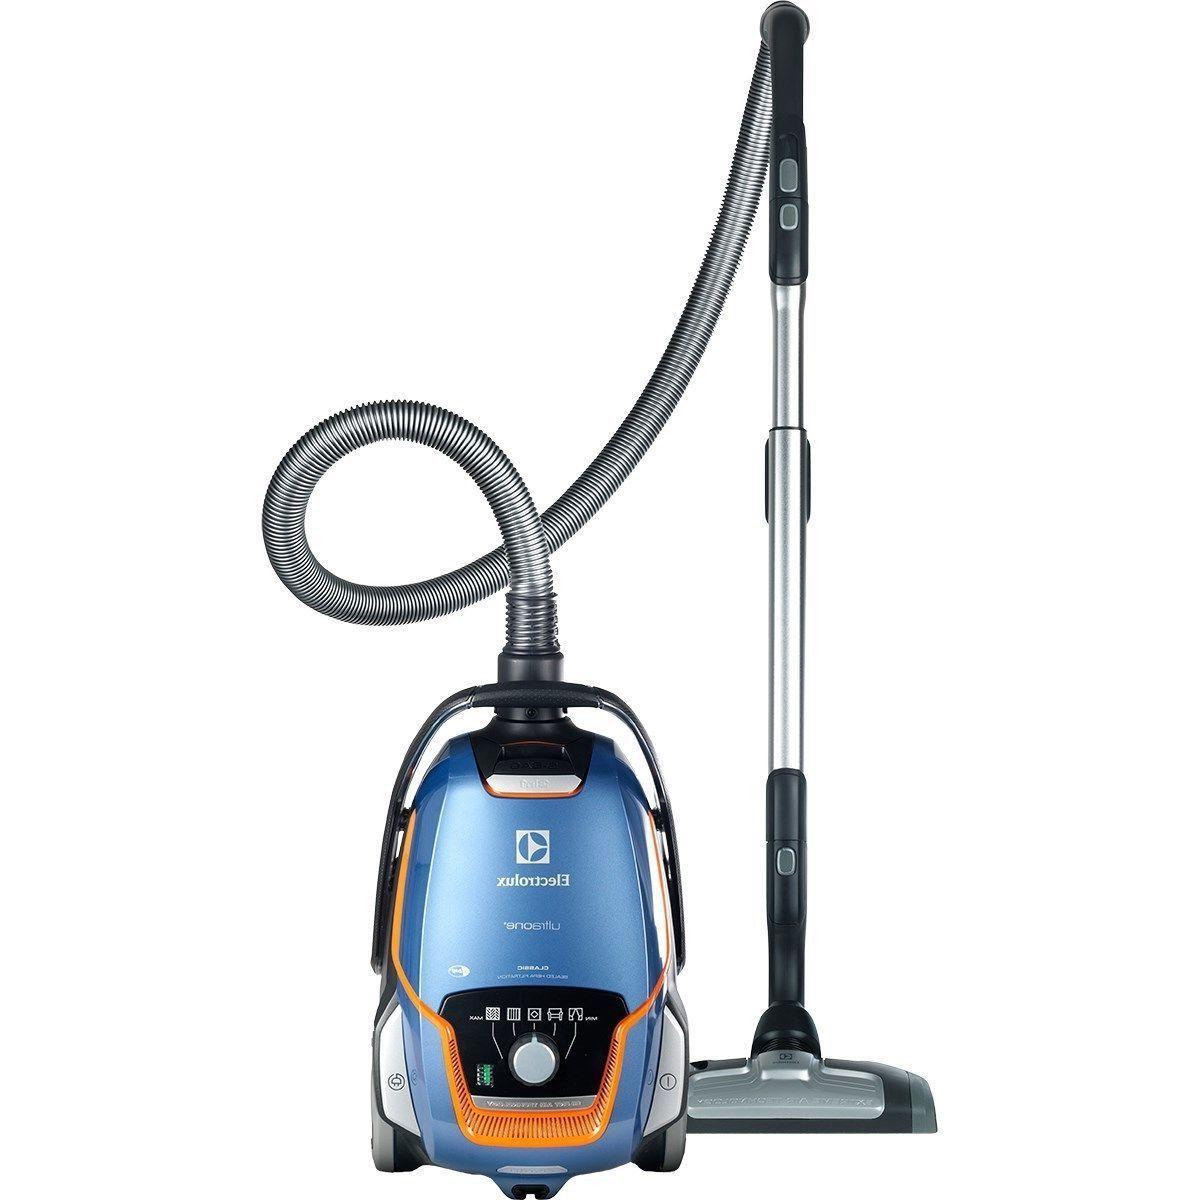 BRAND NEW Electrolux EL7080ACL Canister Vacuum Cleaner SEALE